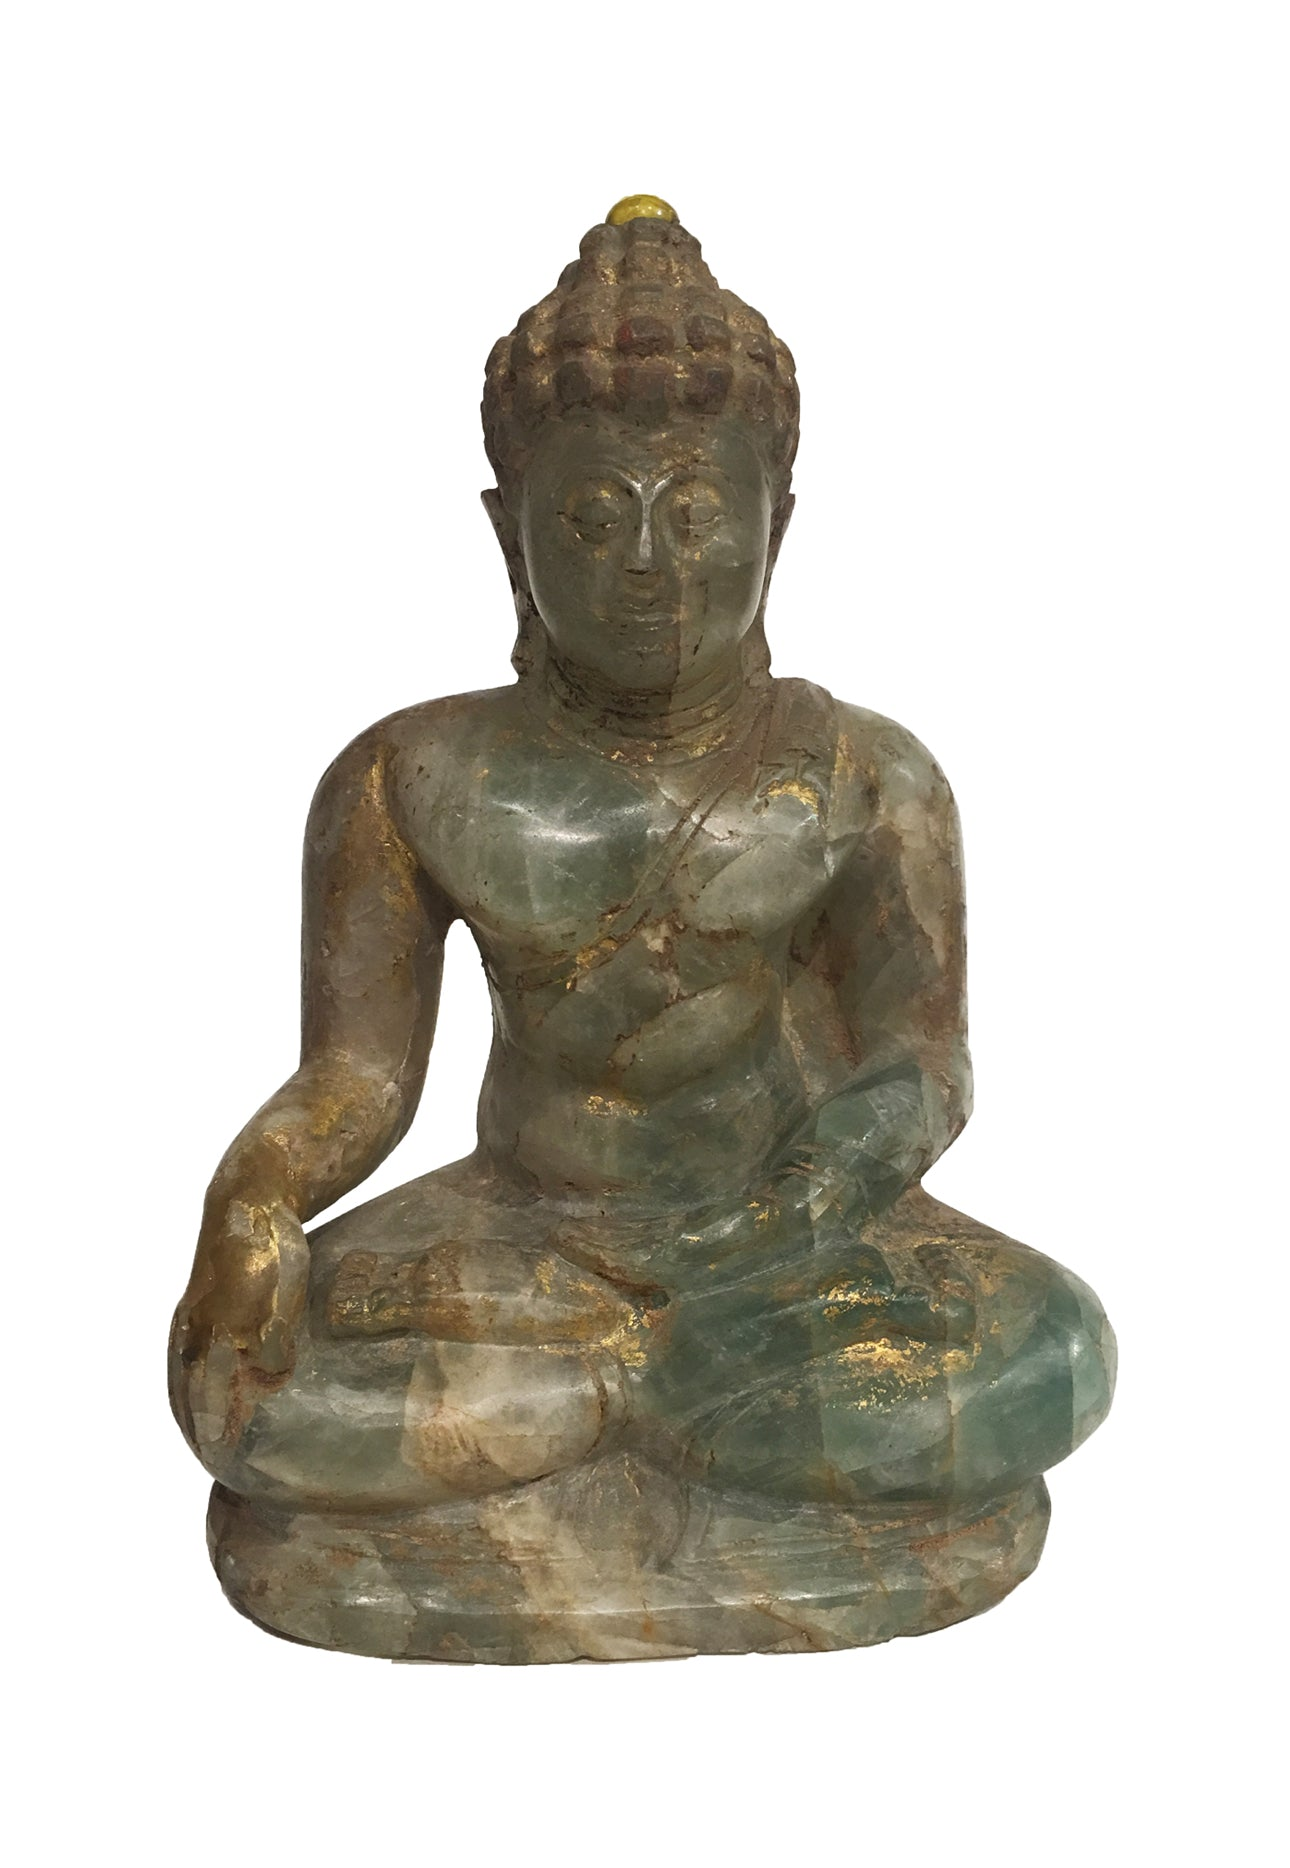 Antique Green Jade Buddha - Tibet Arts & Healing